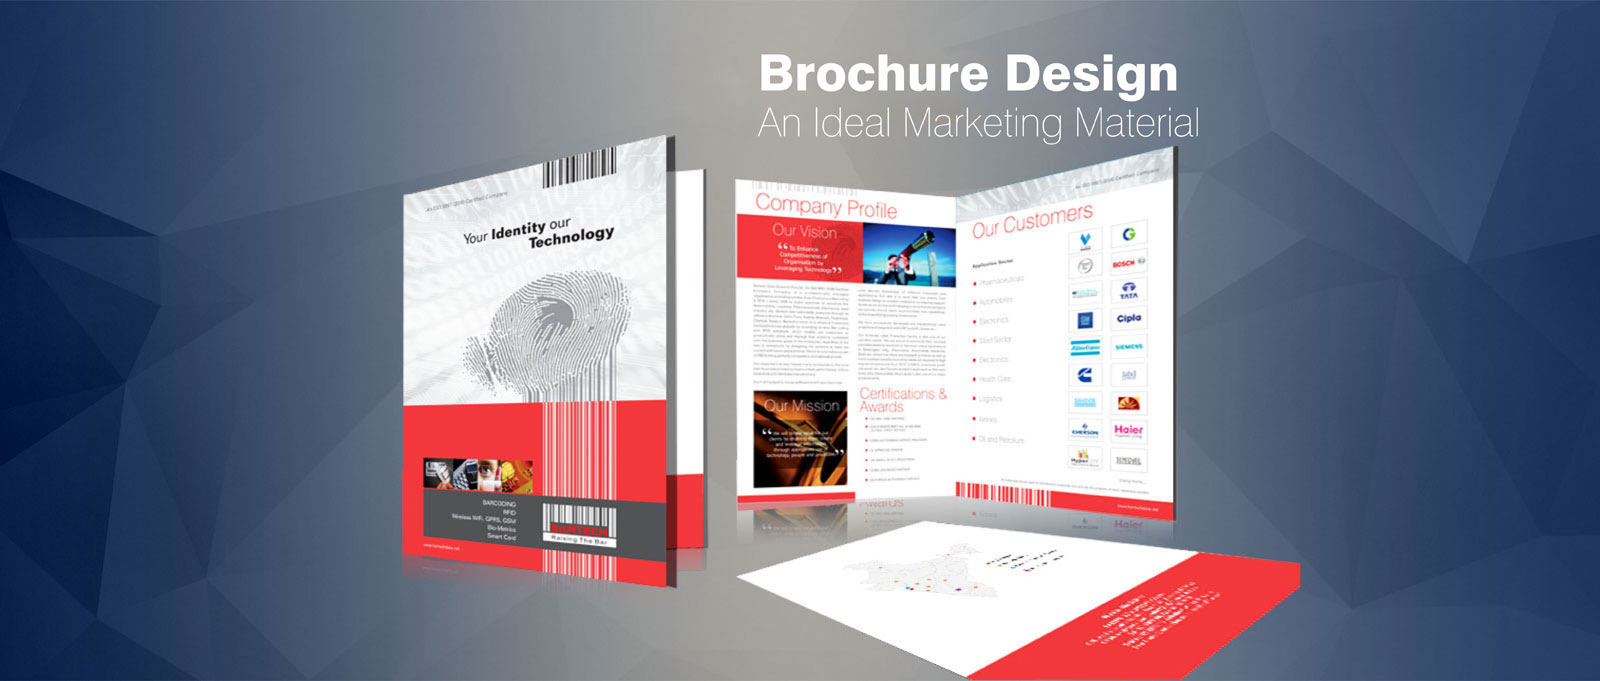 brochure design - Brochure Design Ideas